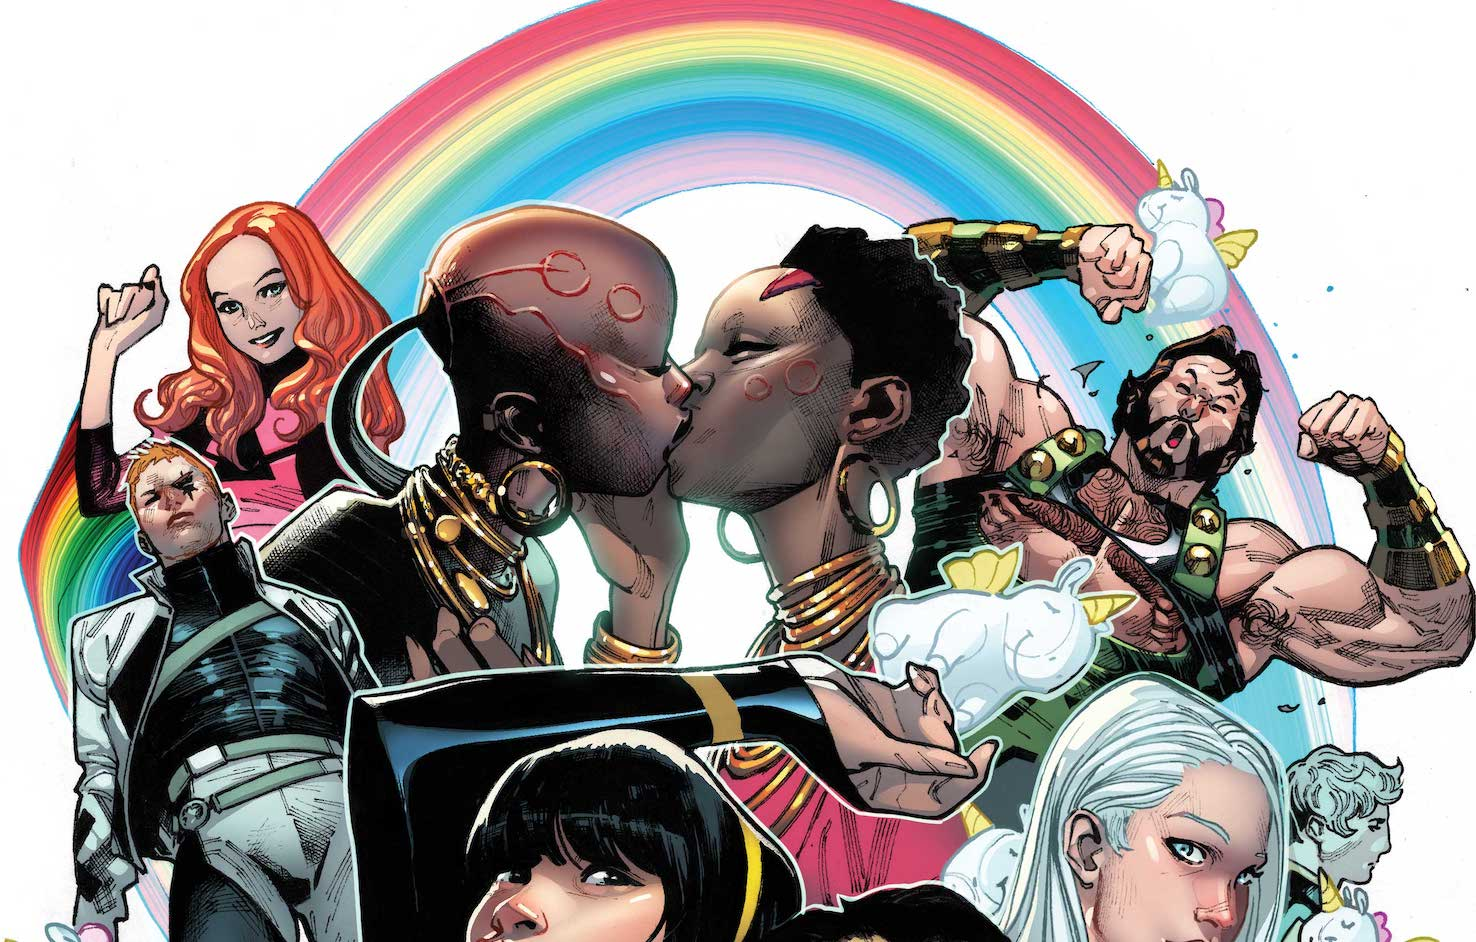 First Look: 'Marvel's Voices: Pride' #1 variant cover by Olivier Coipel